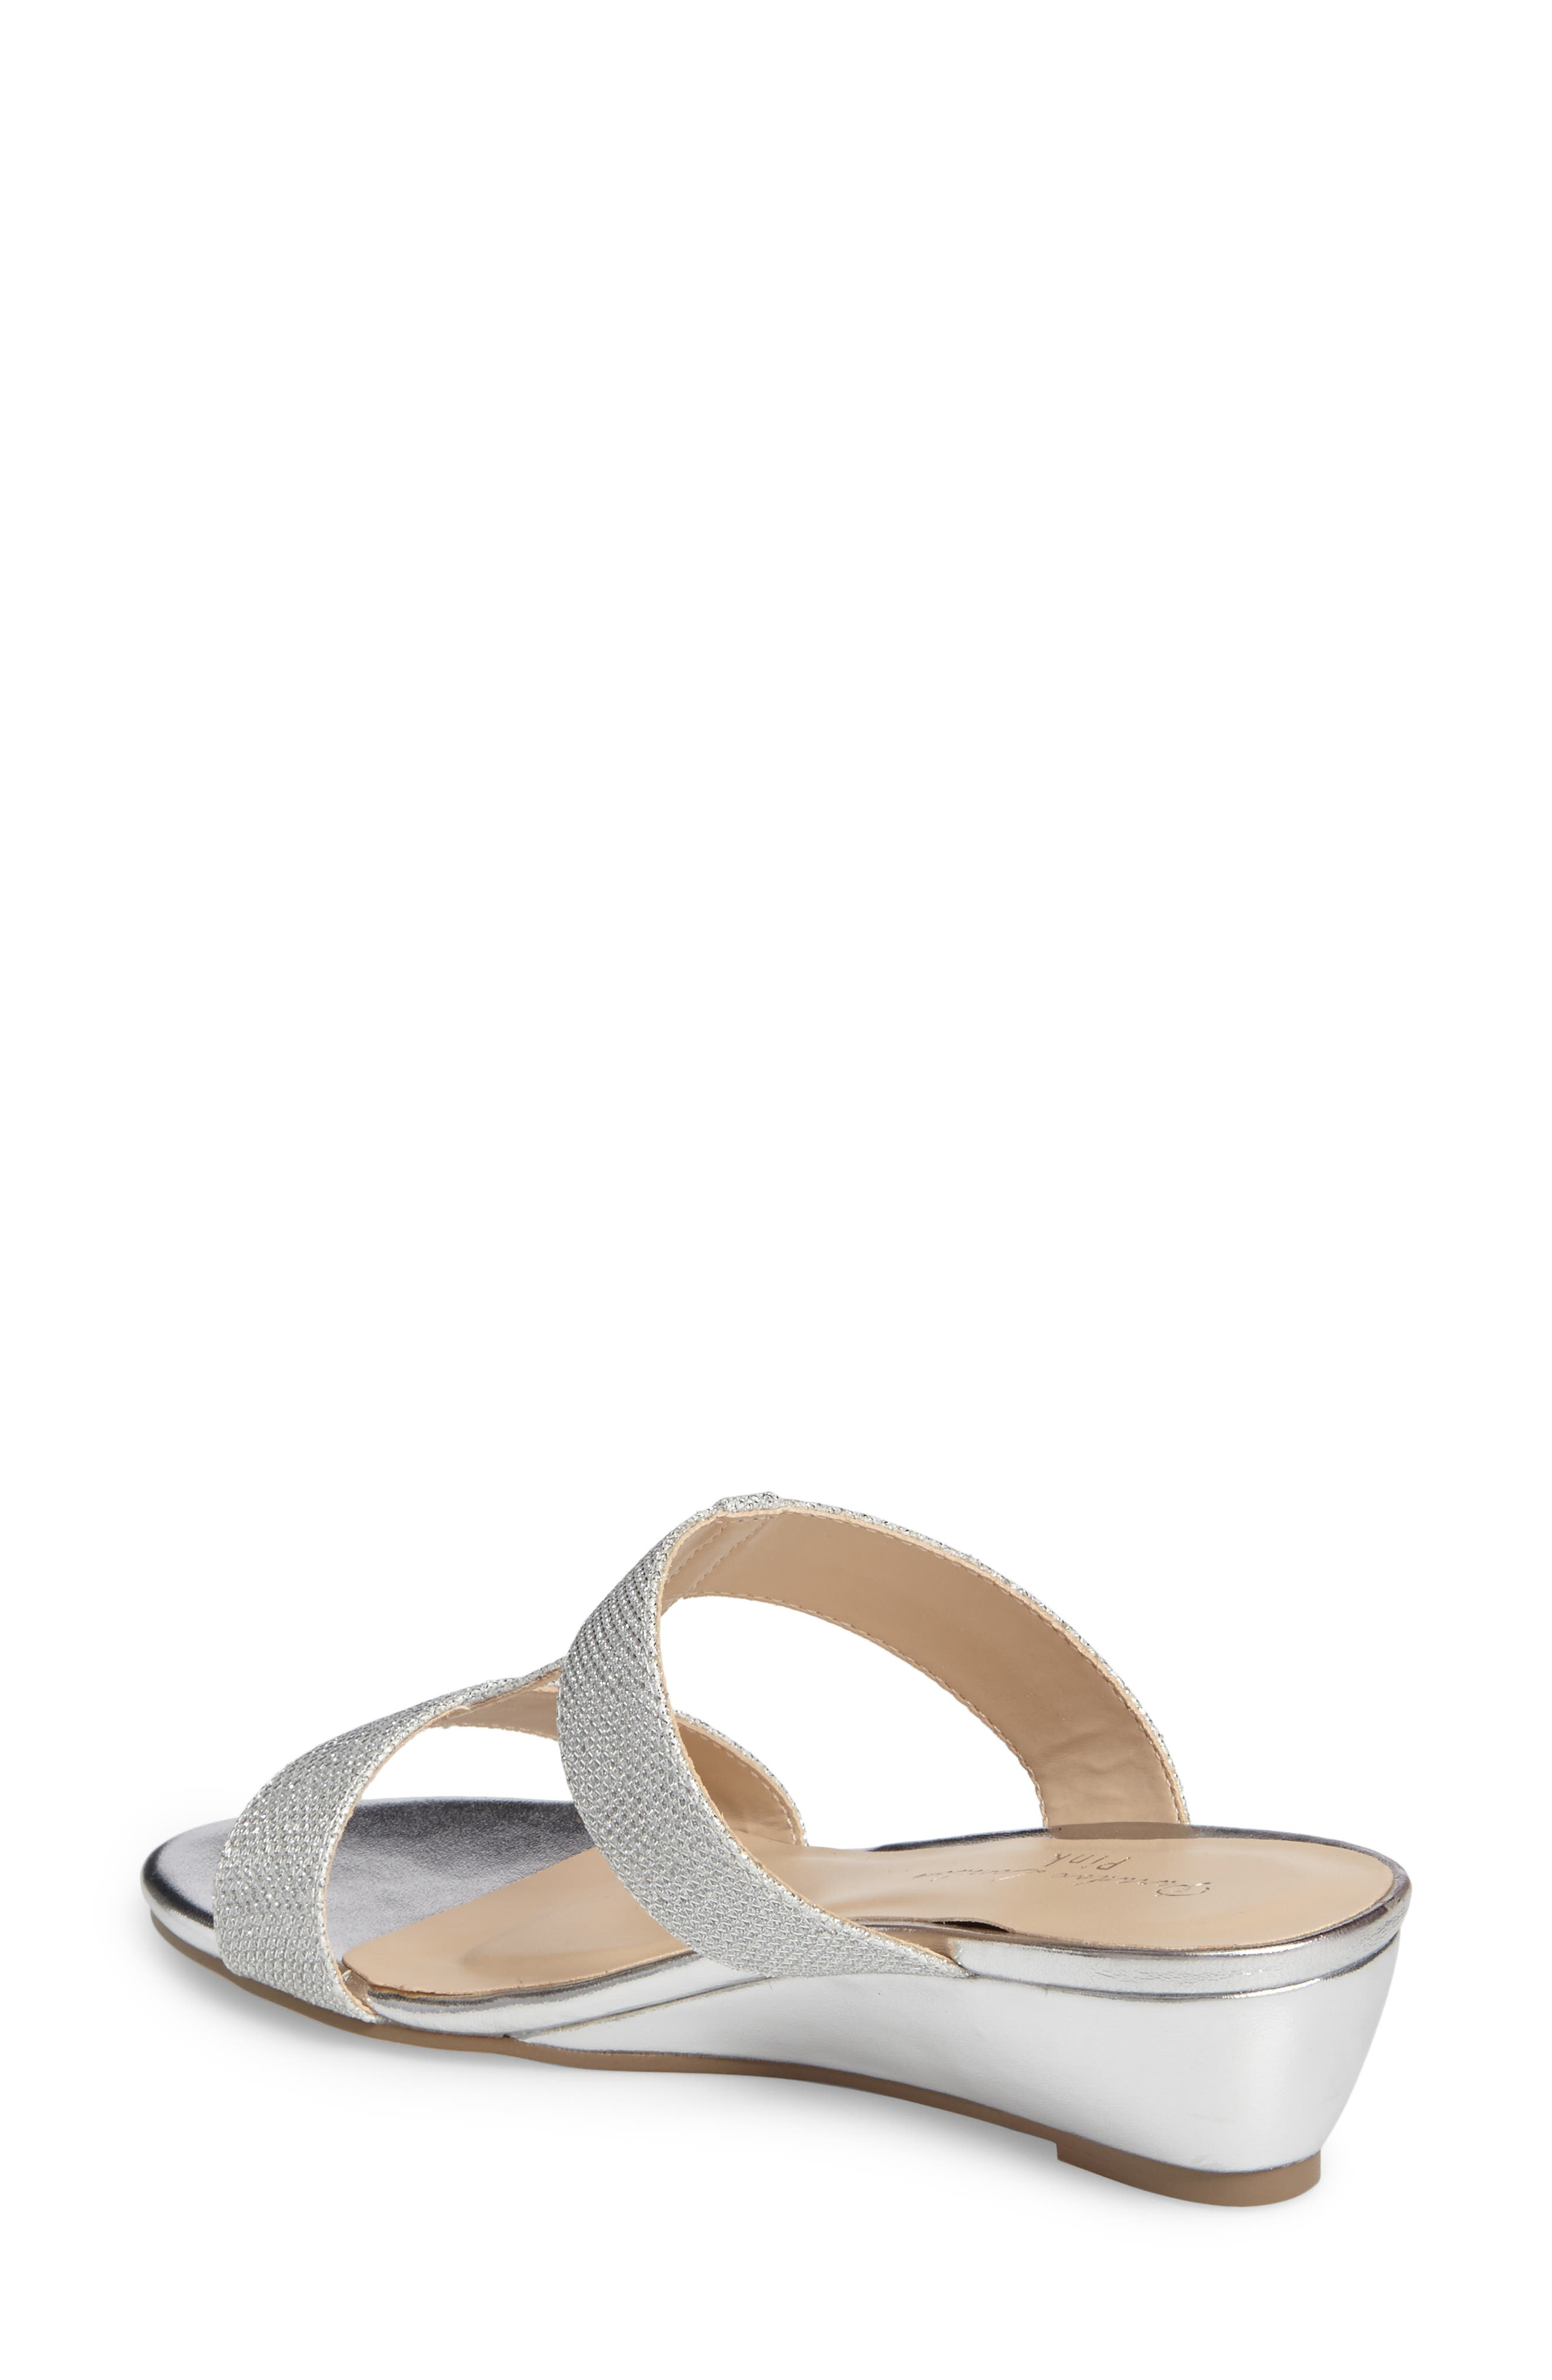 Melina Wedge Slide Sandal,                             Alternate thumbnail 3, color,